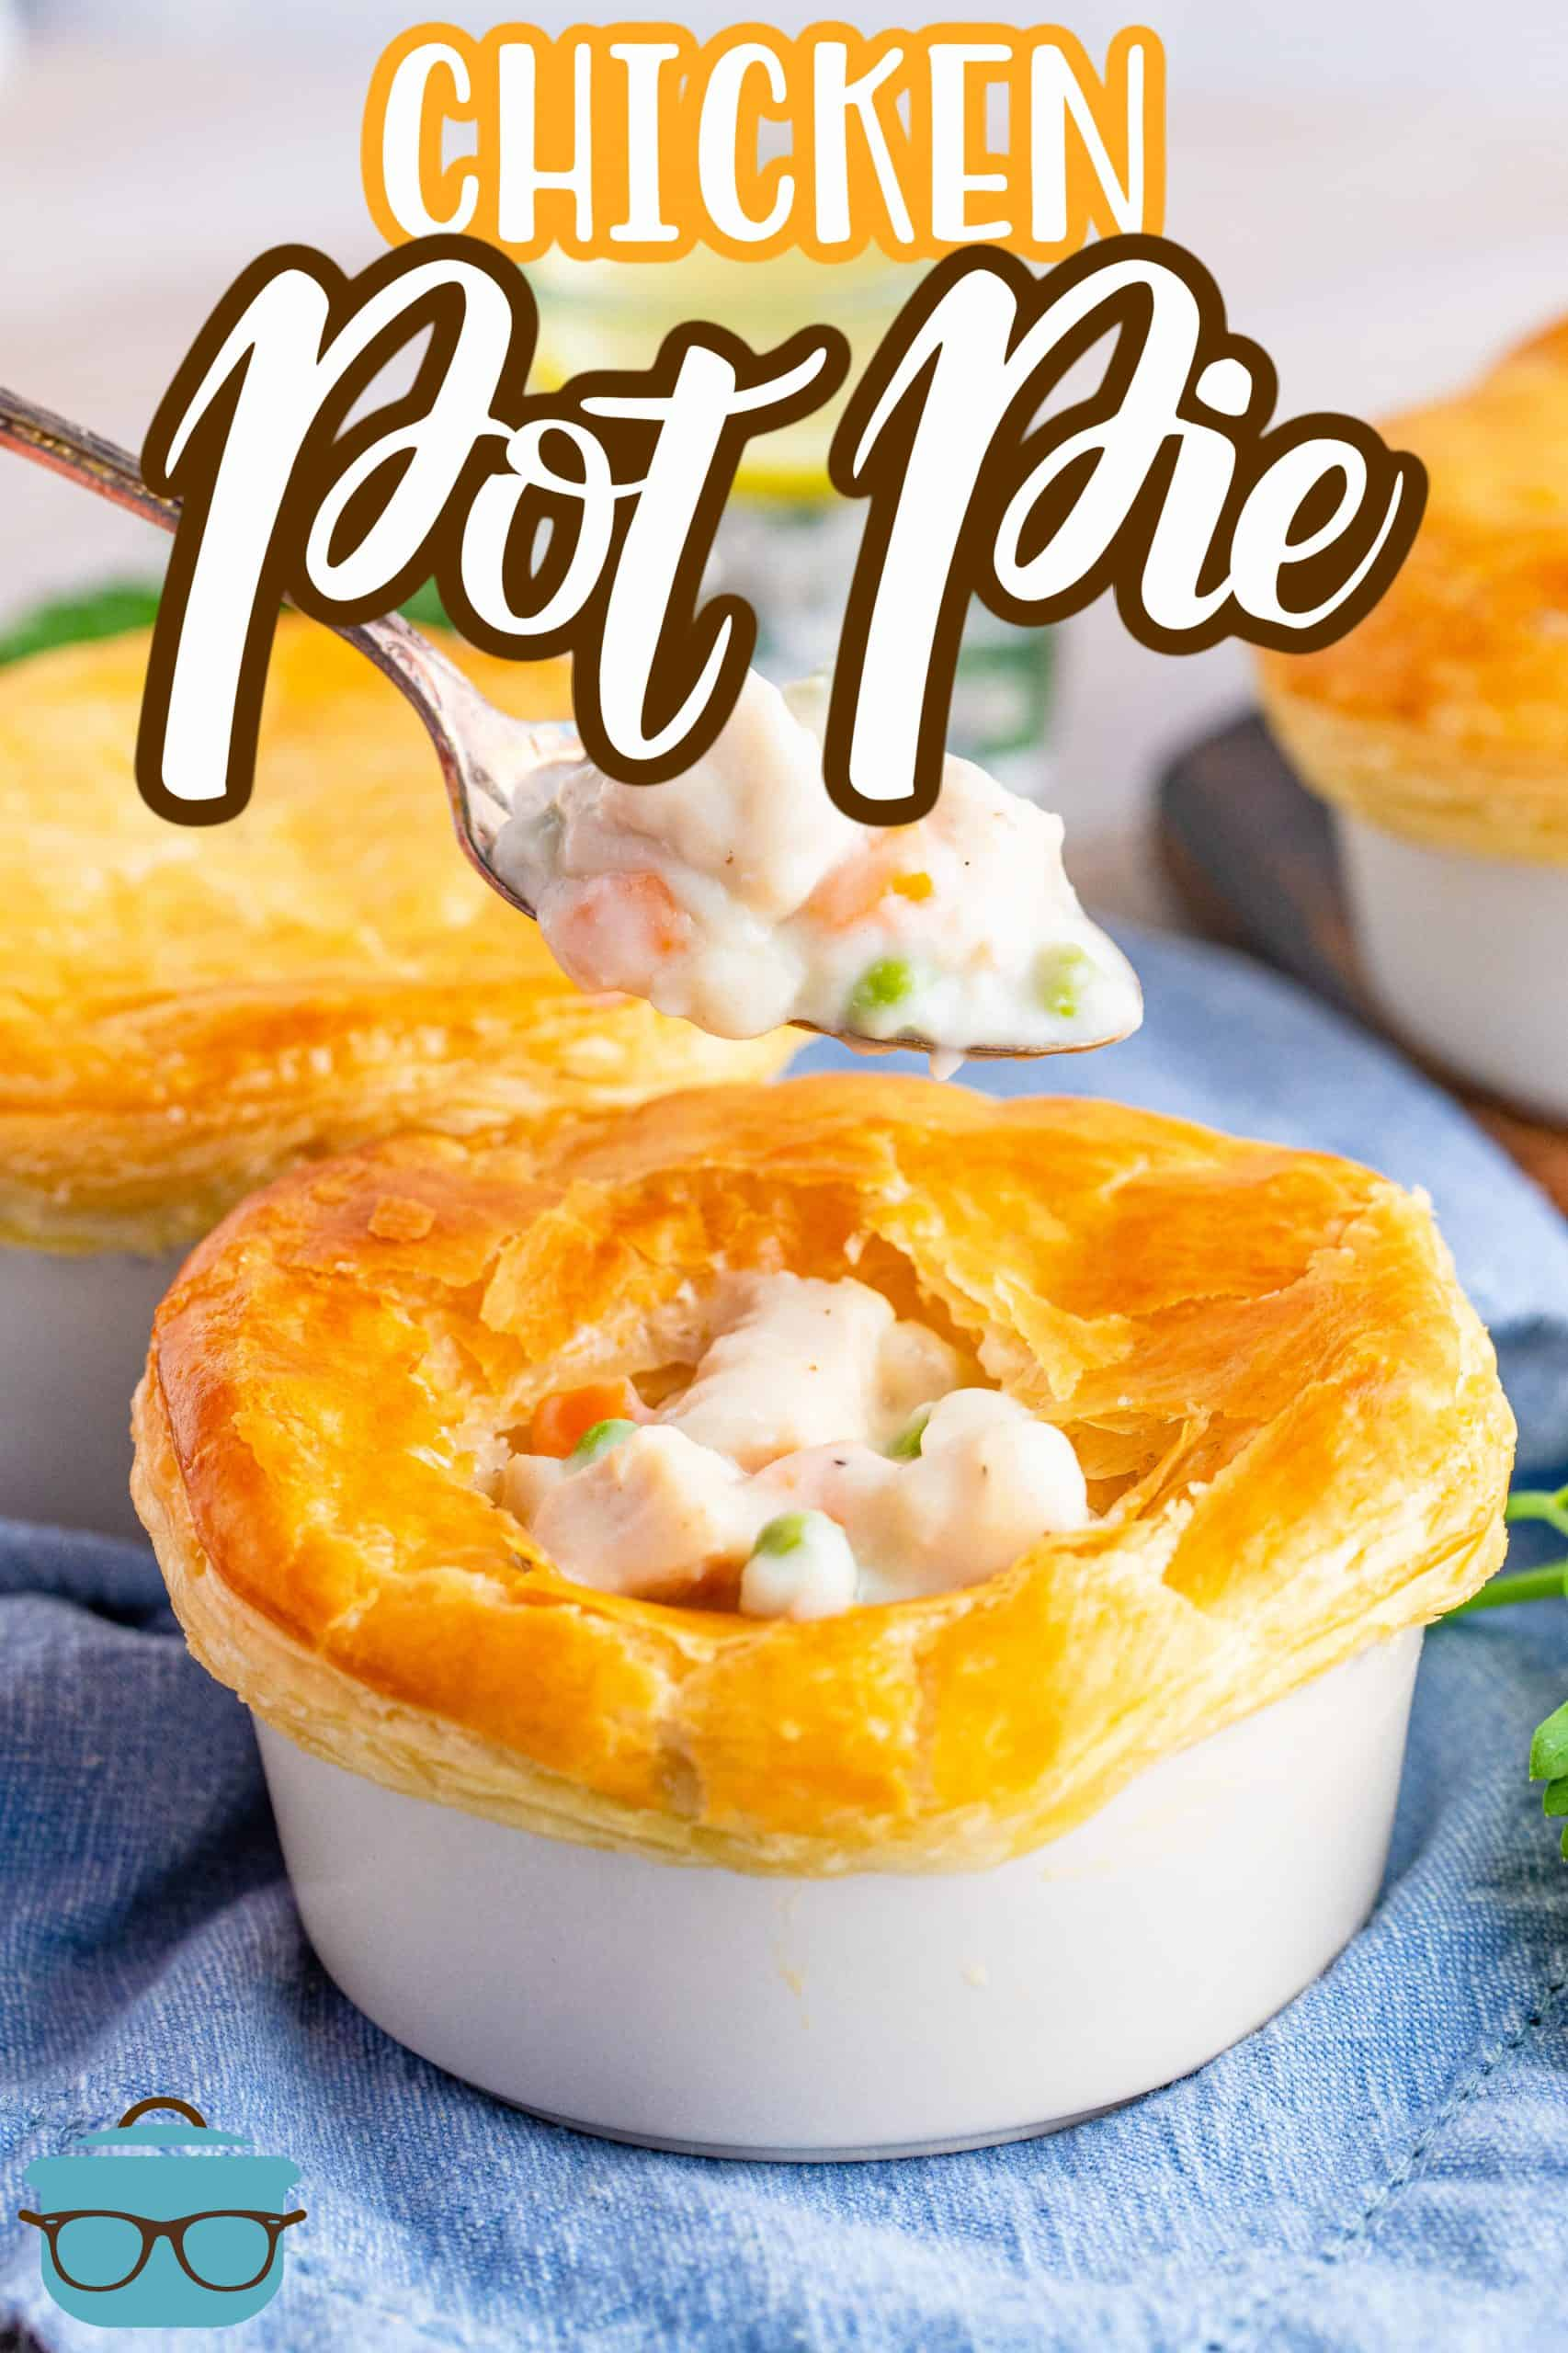 Homemade Chicken Pot Pie has the most delicious, thick, creamy filling with an easy puff pastry crust. Individual ramekins make for easy serving.